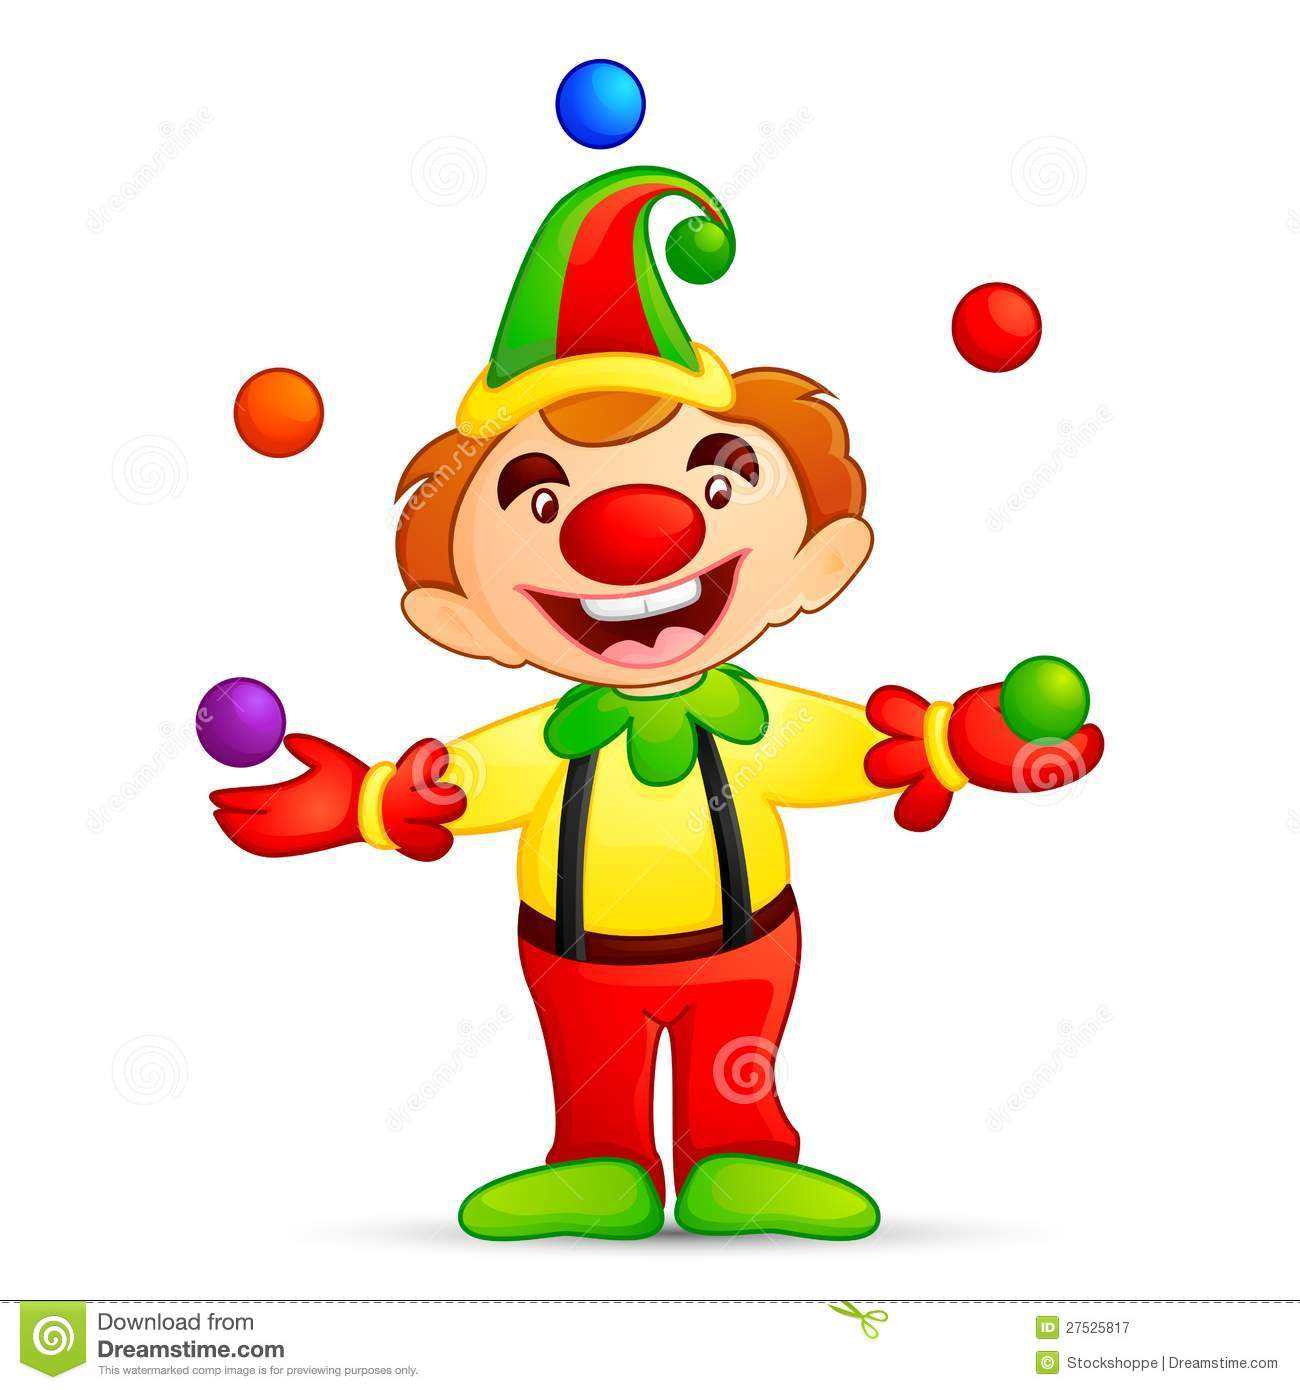 Circus joker clipart image library library Joker Clip Art & Joker Clip Art Clip Art Images - ClipartALL.com image library library